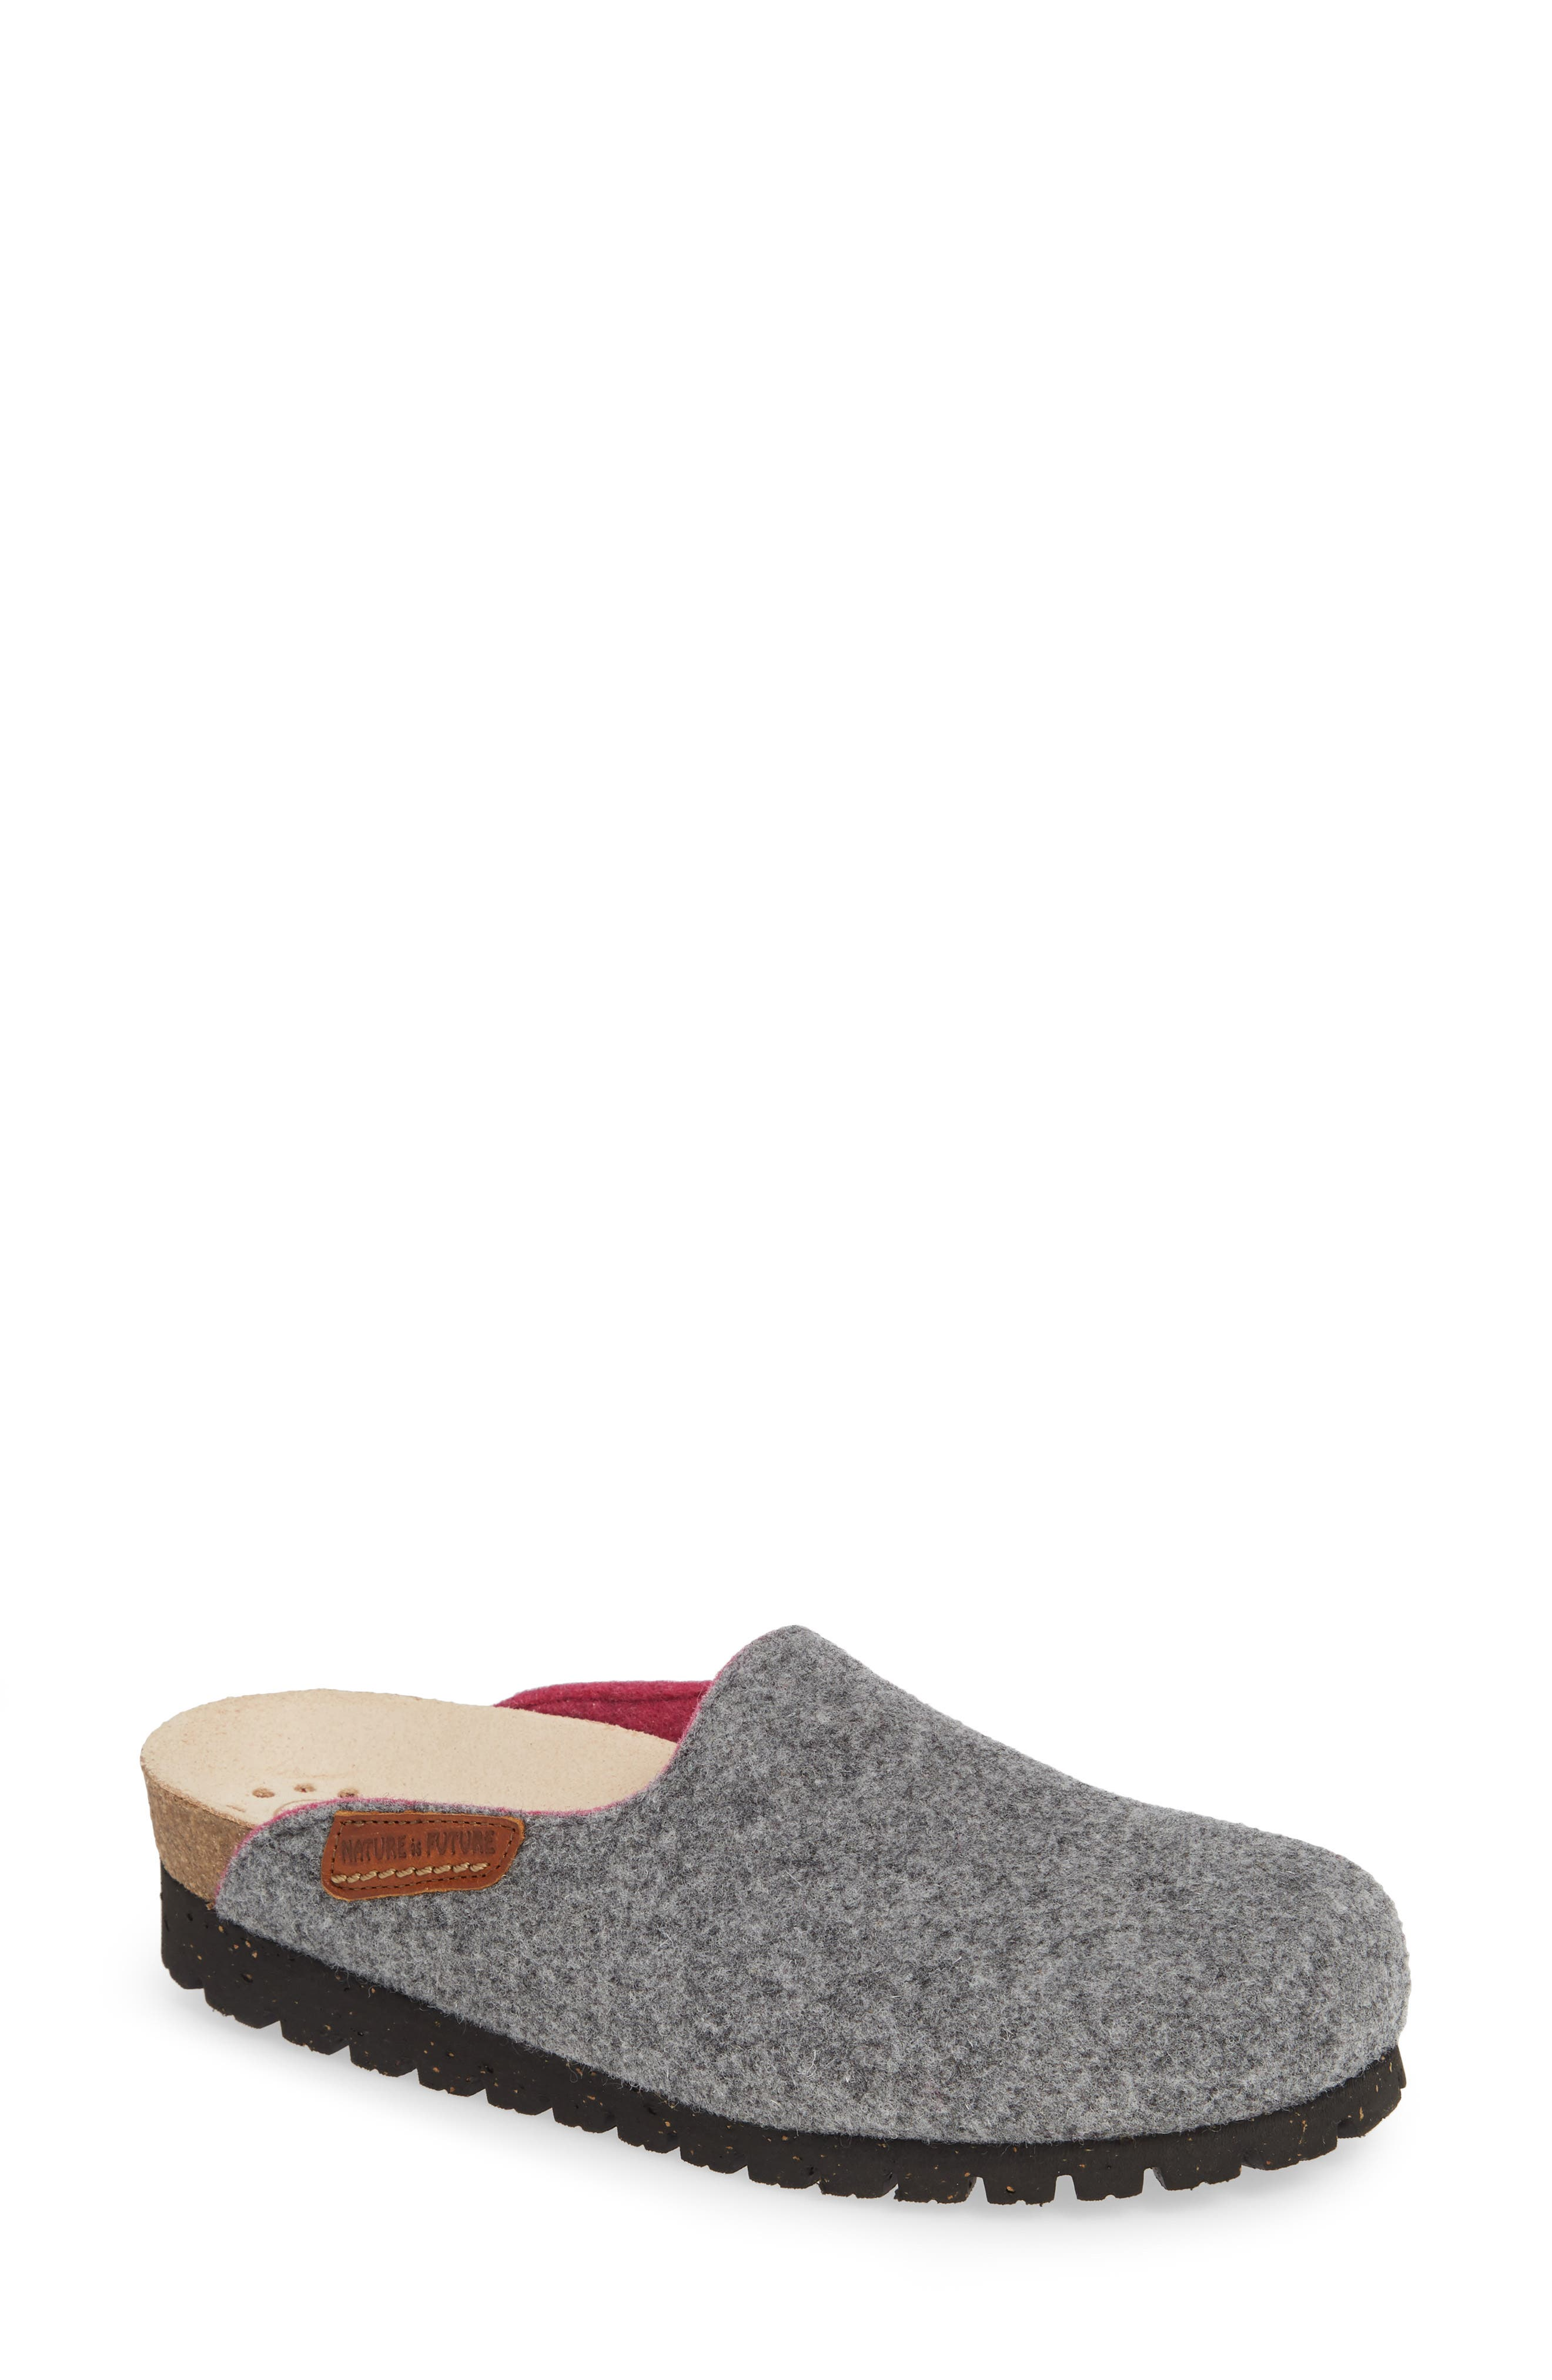 Mephisto Thea Boiled Wool Clog, Grey